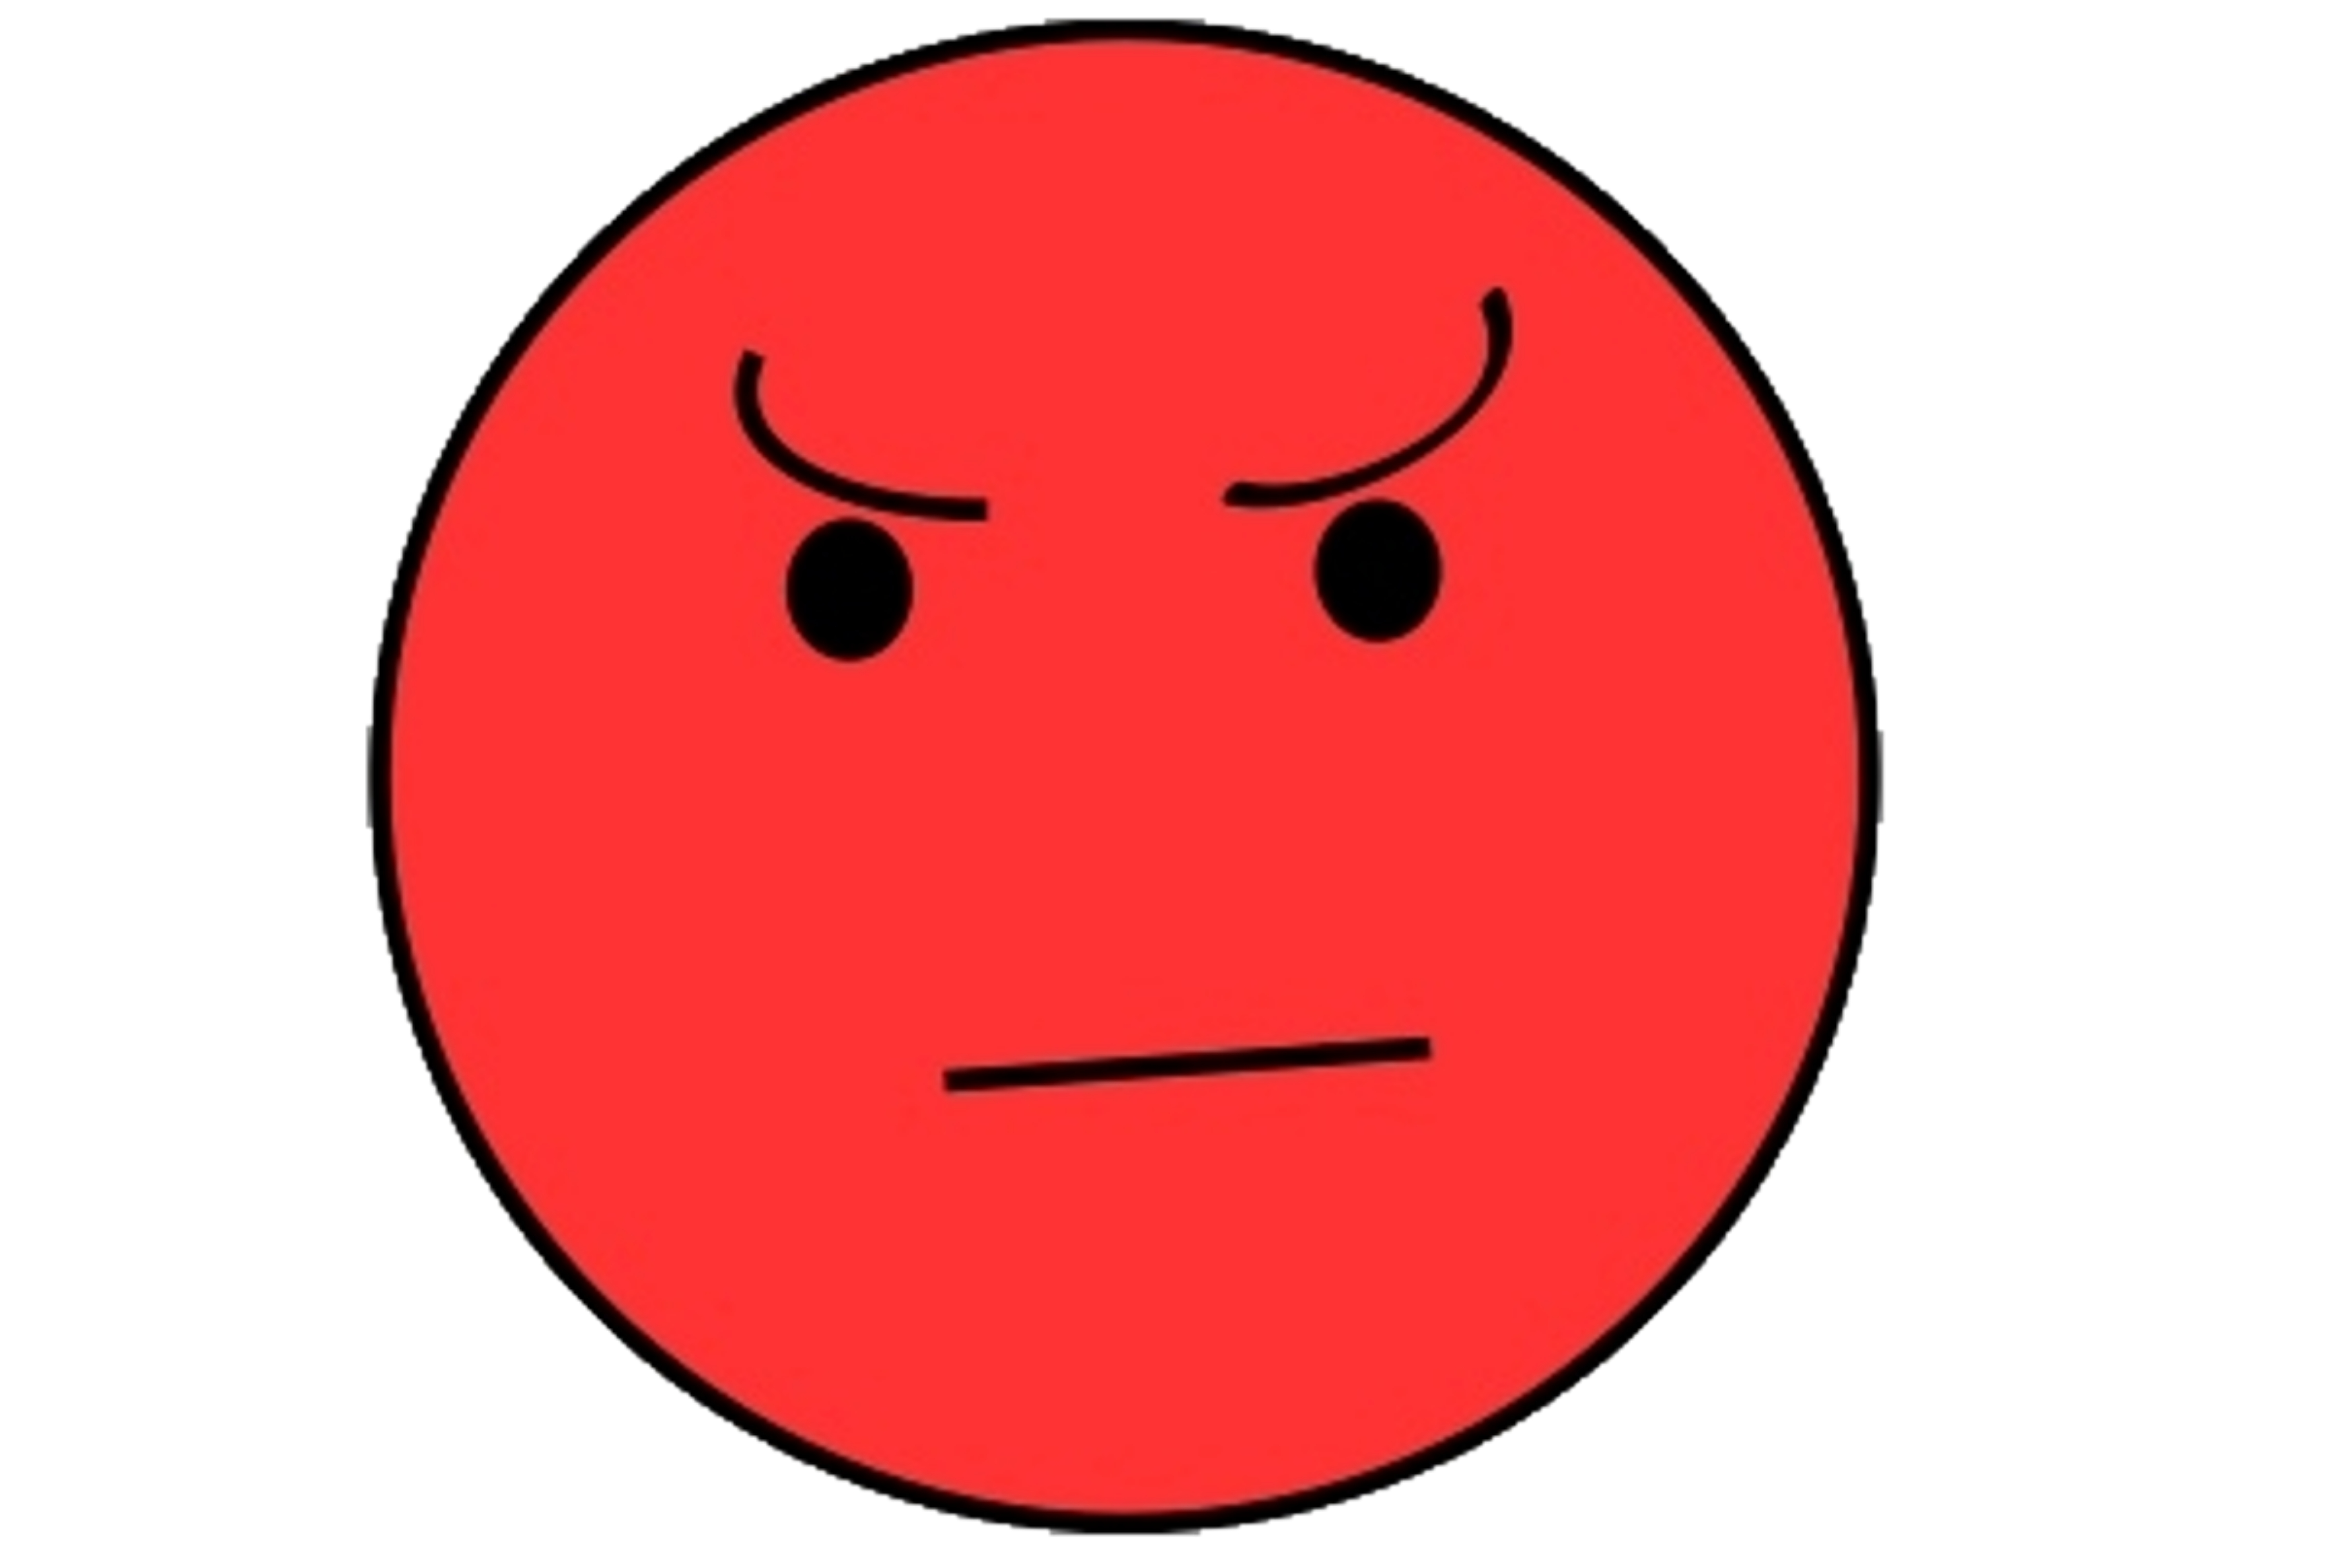 angry kid face clip art - photo #32